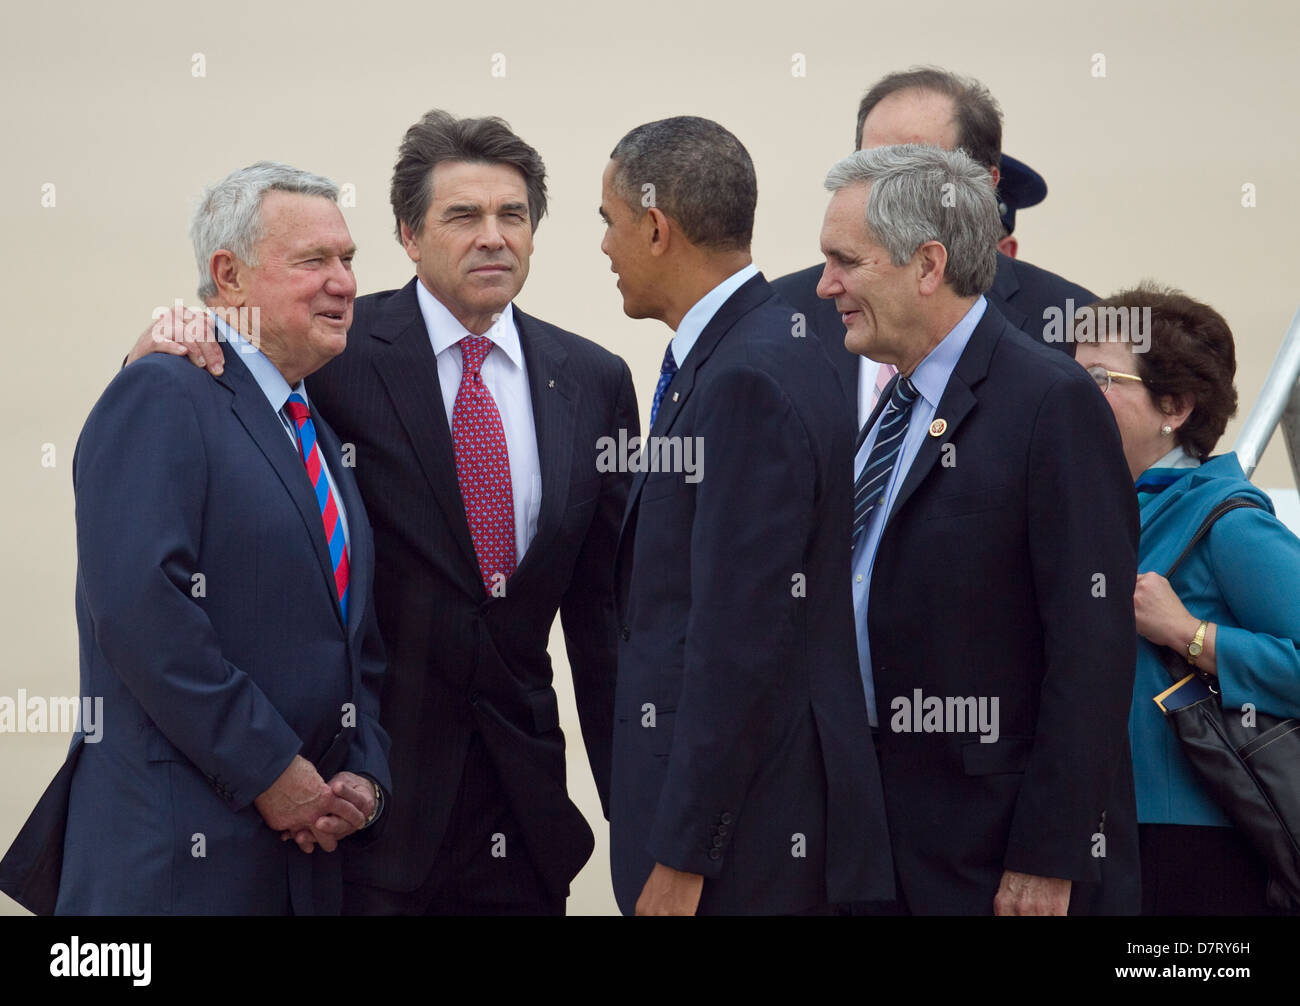 President of the United States, Barack Obama is greeted by various politicians after landing in Austin, Texas - Stock Image